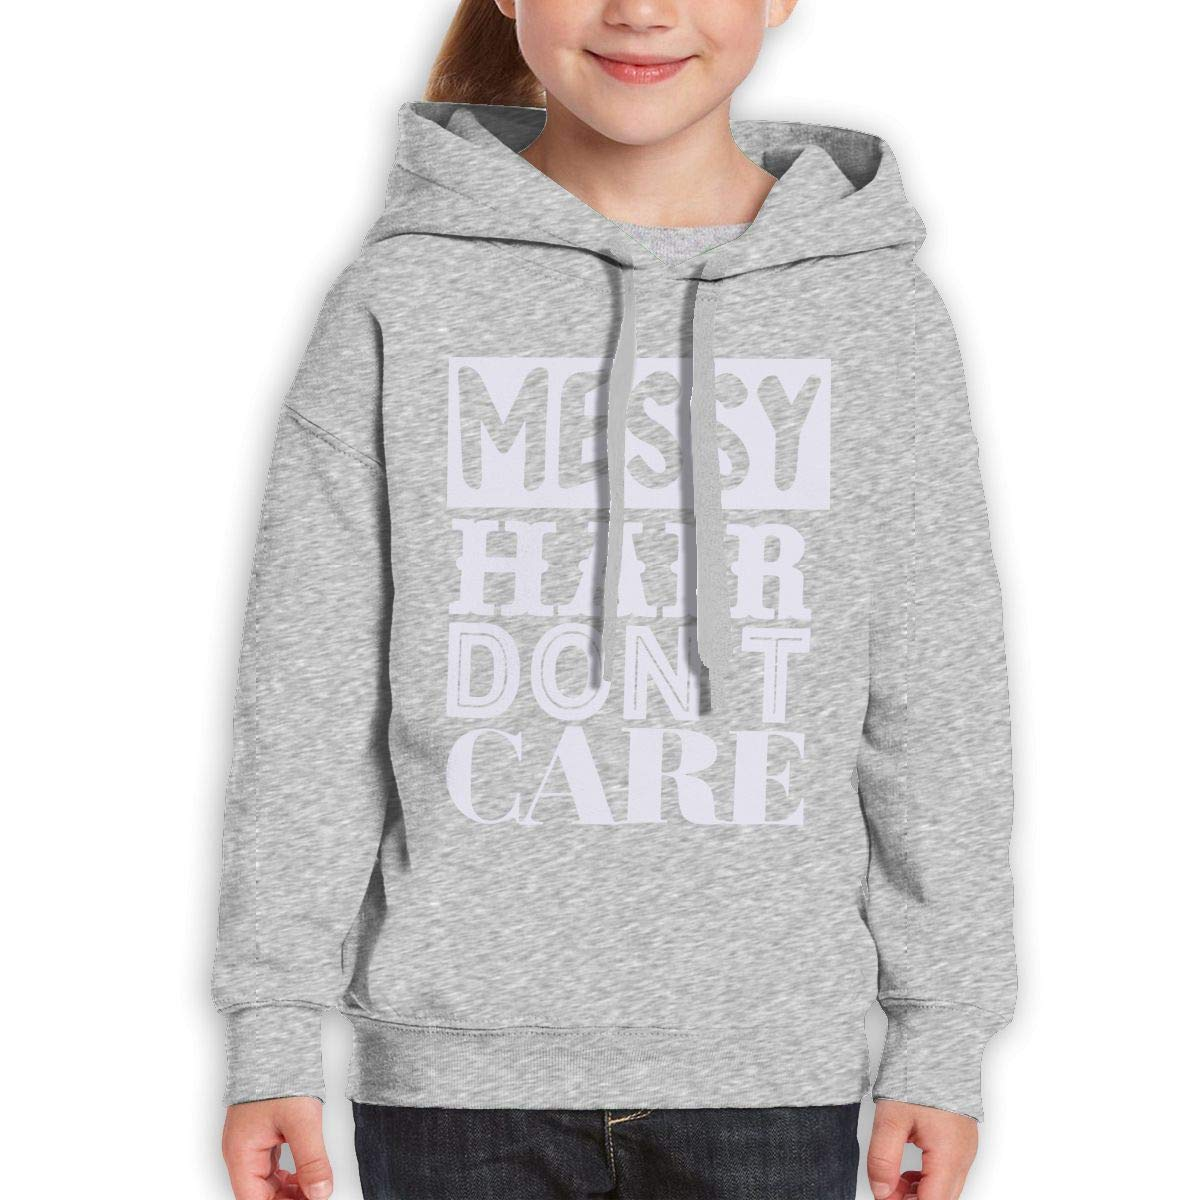 Boys Girls Messy Hair Dont Care Teen Youth Hoodies Black